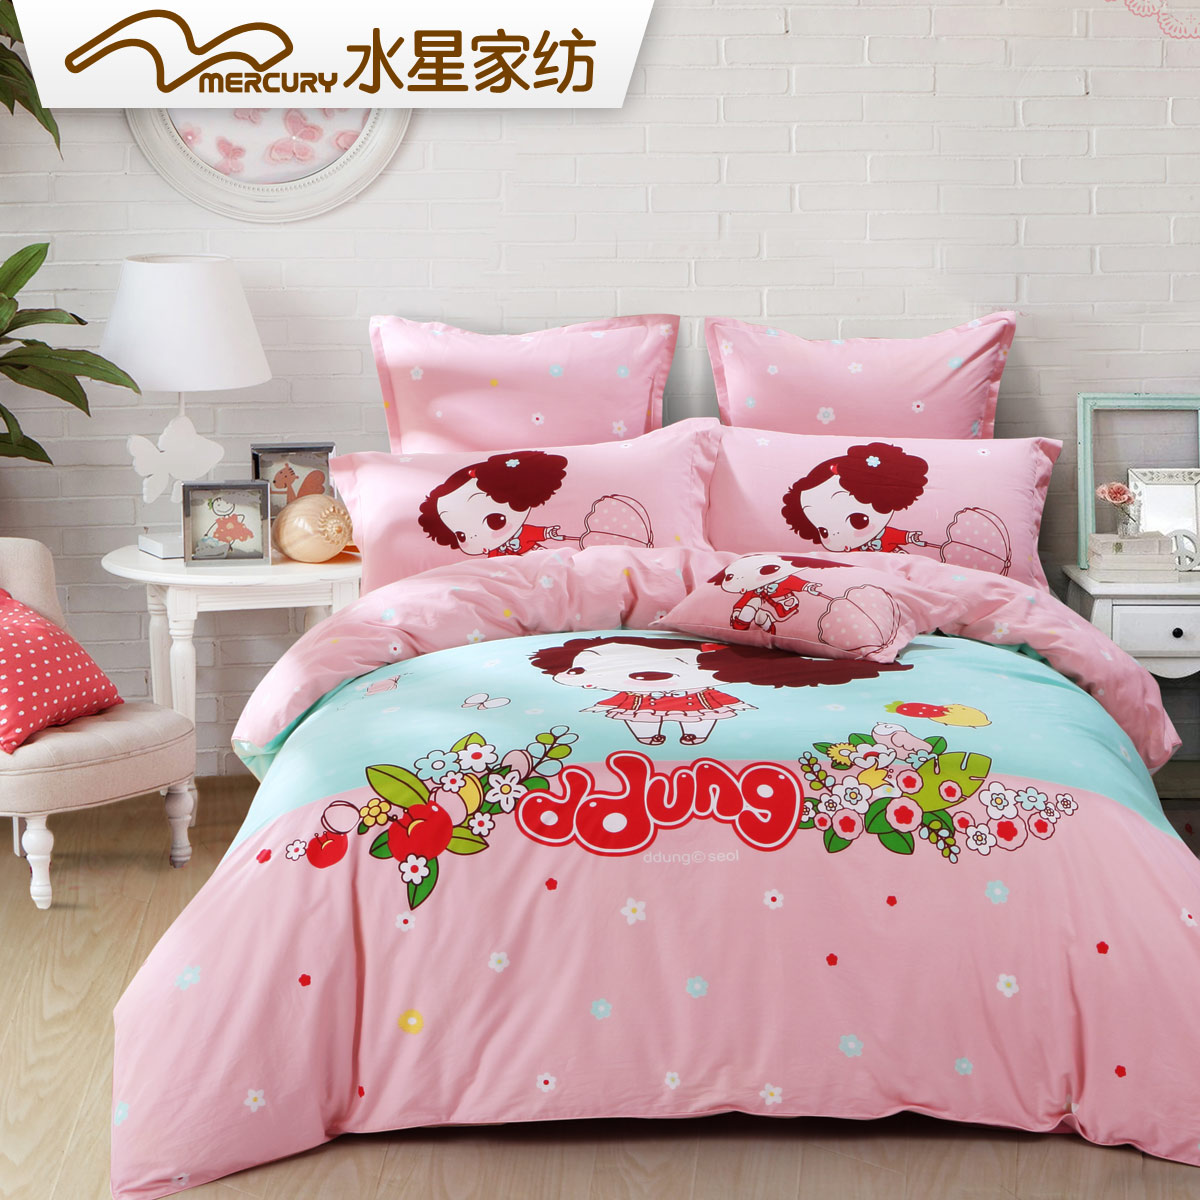 Mercury textile cotton cartoon children's bedding printing a family of four cotton bedding set has a love song